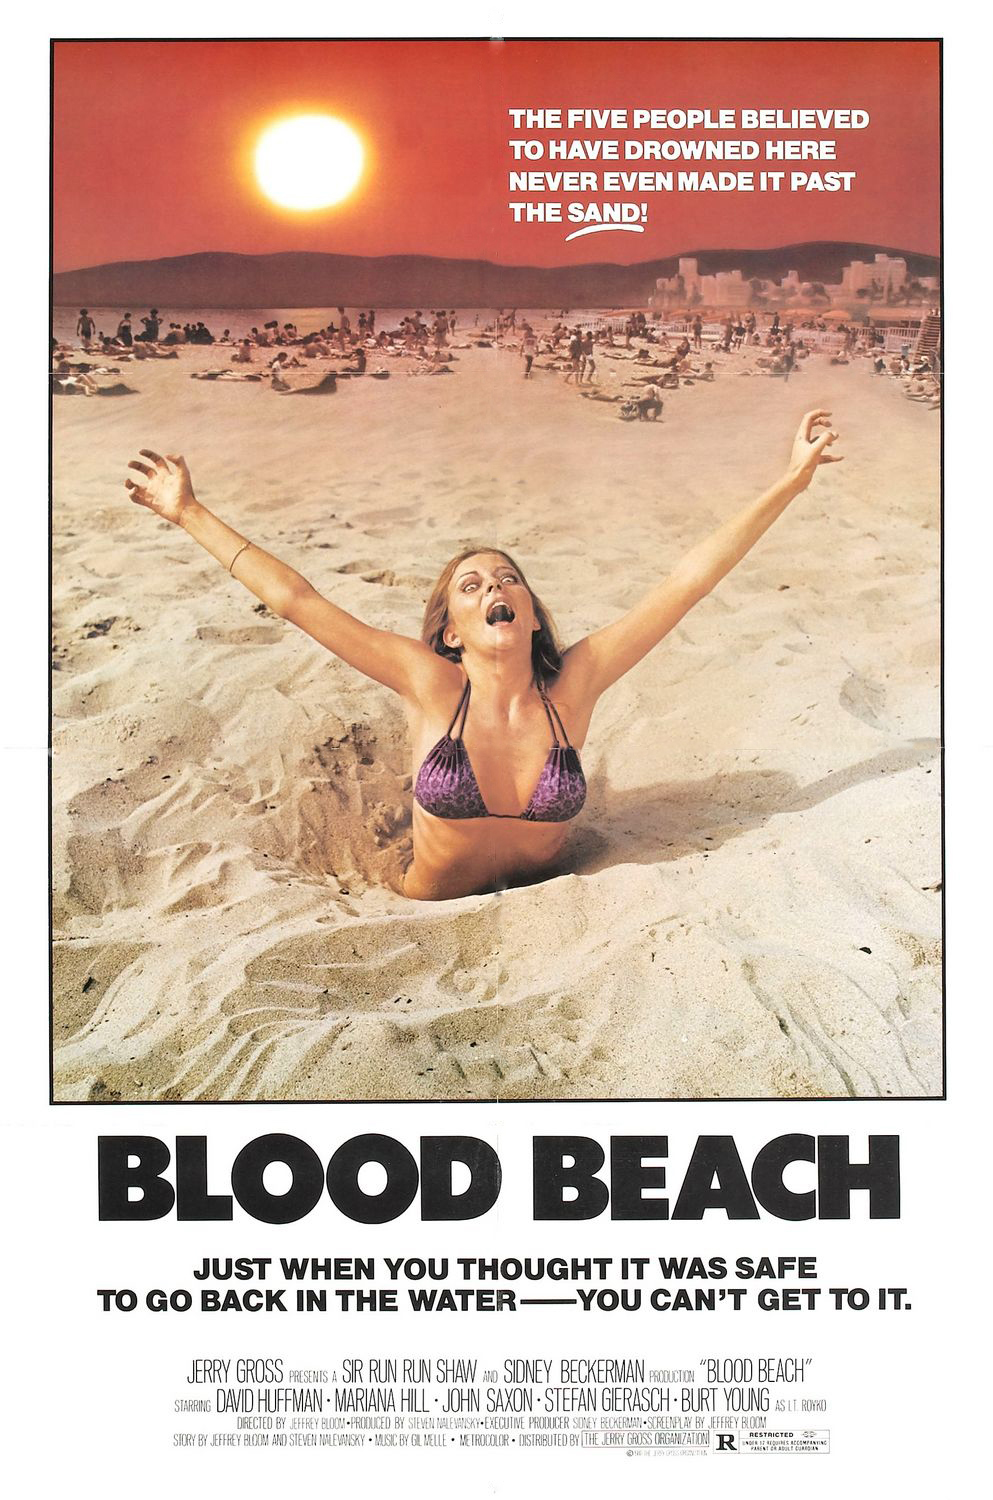 blood beach poster 2 edited 1 - Blood Beach - 35 Years Later And Still Cannot Get To The Water